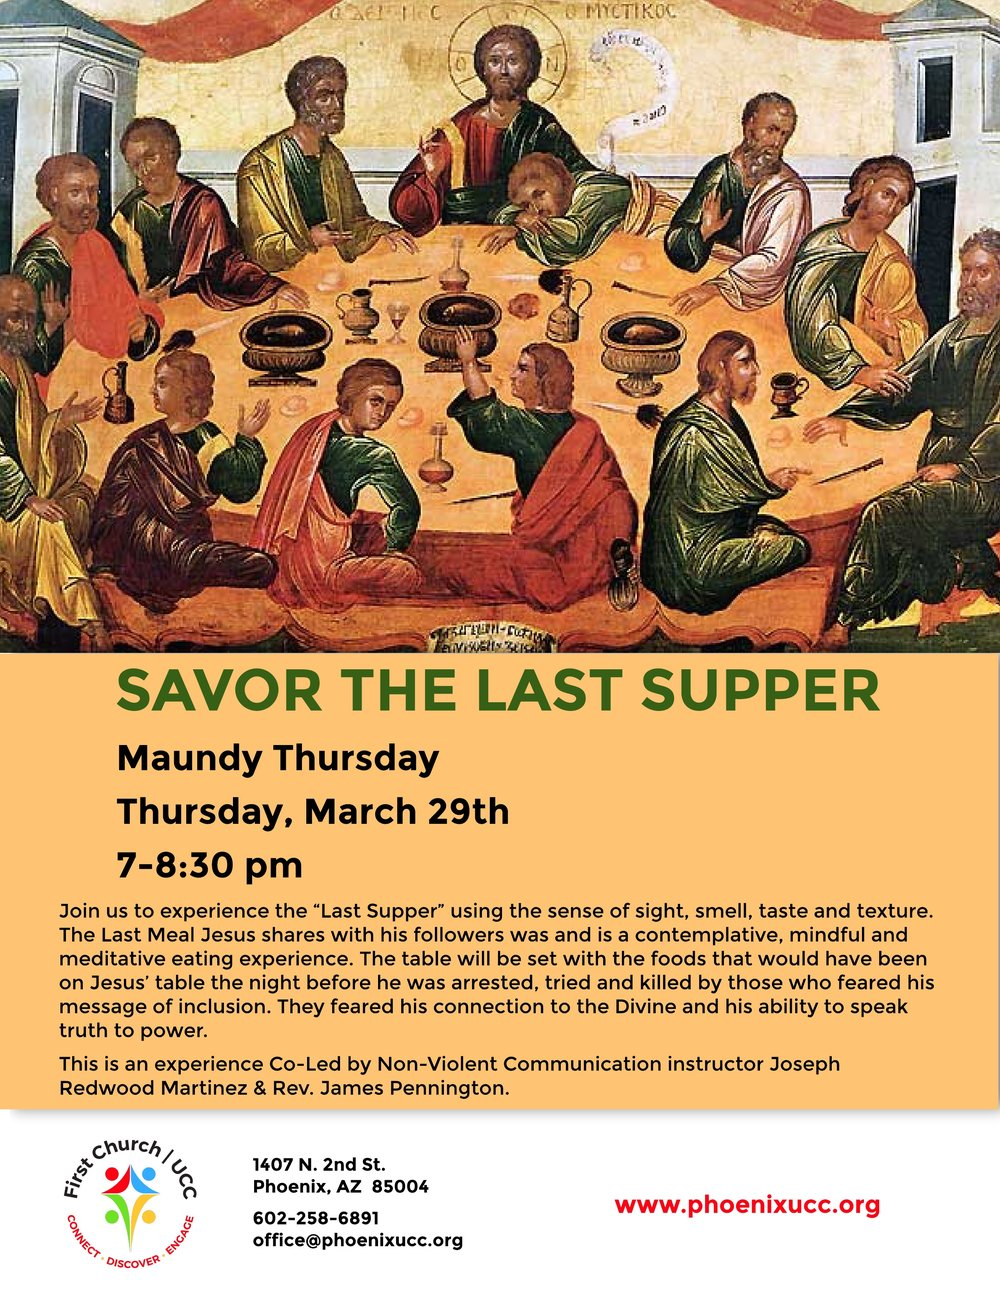 Maundy Thursday first church ucc phoenix.jpeg